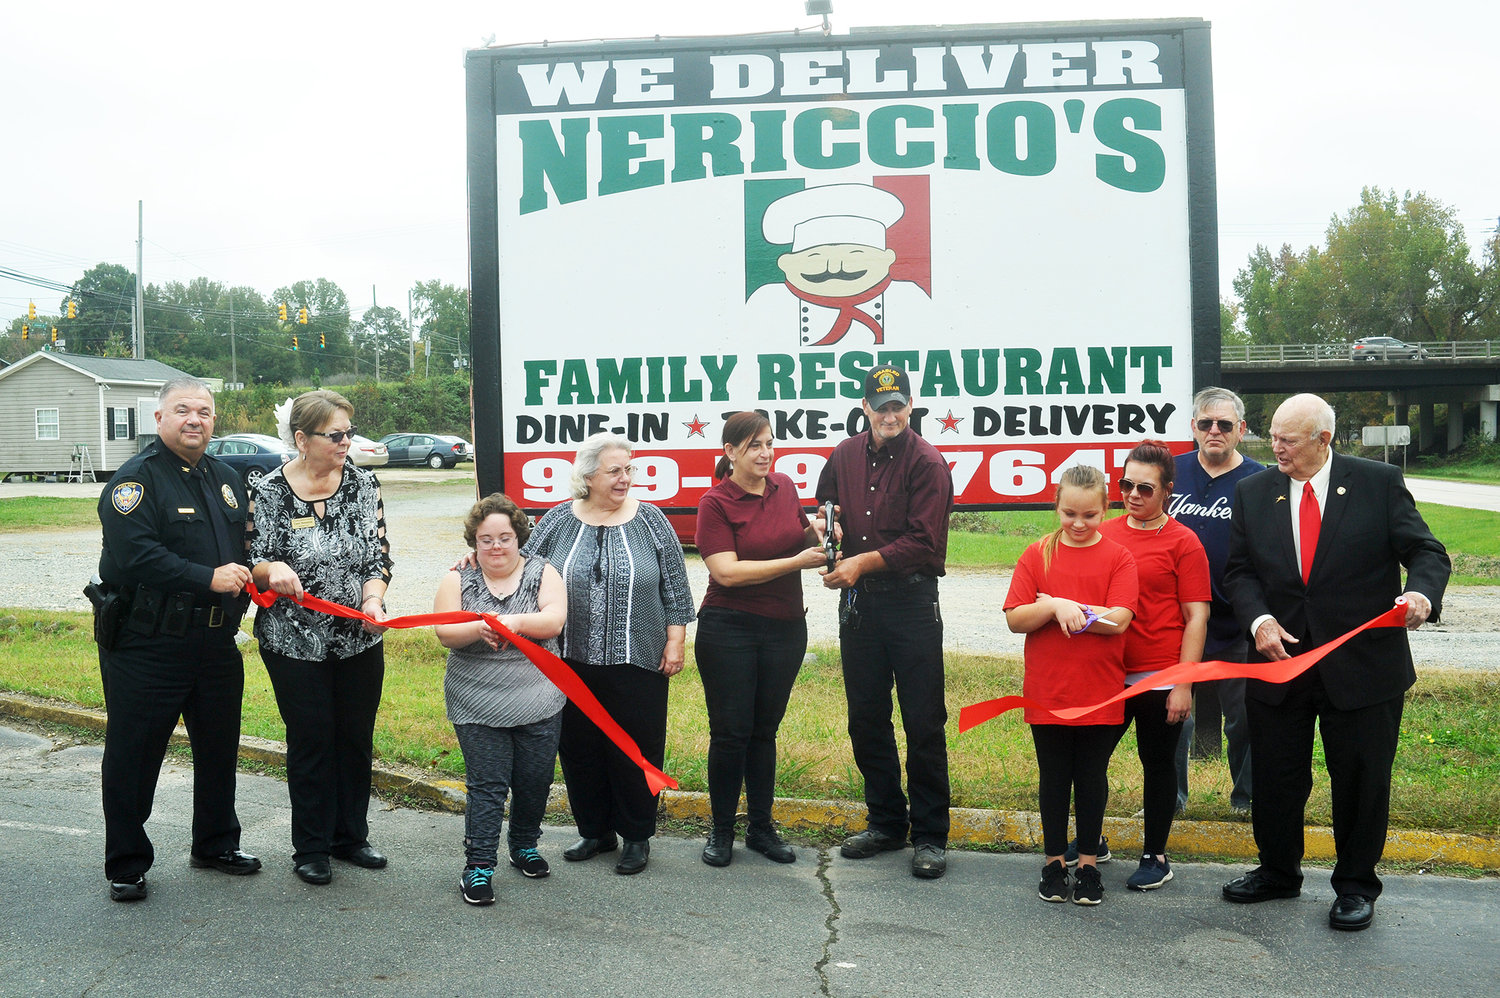 Friends and family joined Siler City Police Chief Michael Wagner and Mayor John Grimes to cut the ribbon on Nerricio's, a new business in town, with co-owners Mary and Stephen Boyce at 1110 N. 2nd Ave. in Siler City last Tuesday. 'The opening shows confidence in investing money in Siler City,' Grimes said. 'The enterprise has a good chance of succeeding because of Mountaire and the growing economy. Because of new management and money moving around, more independent small businesses now have a very good chance of being successful.' The restaurant is located in the former home of 'The Copper Penny,' and offers a variety of Italian foods for patrons.